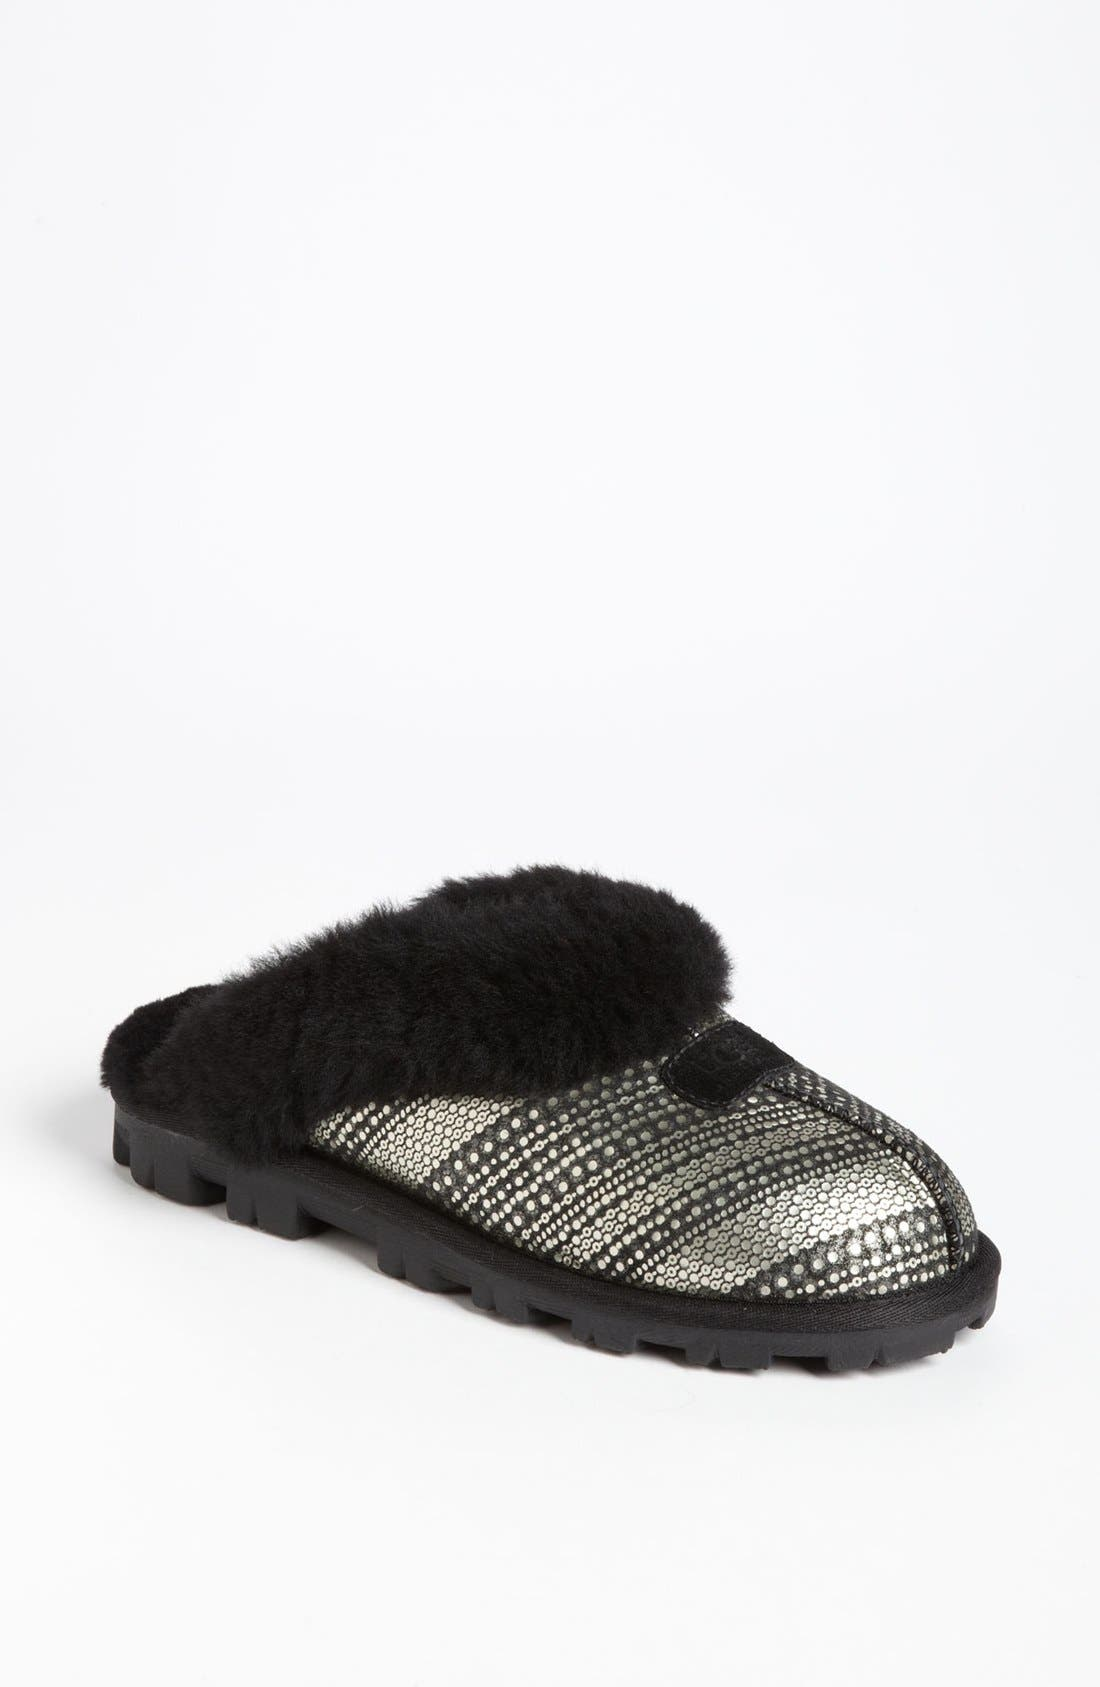 Alternate Image 1 Selected - UGG® Australia 'Coquette' Slipper (Women)